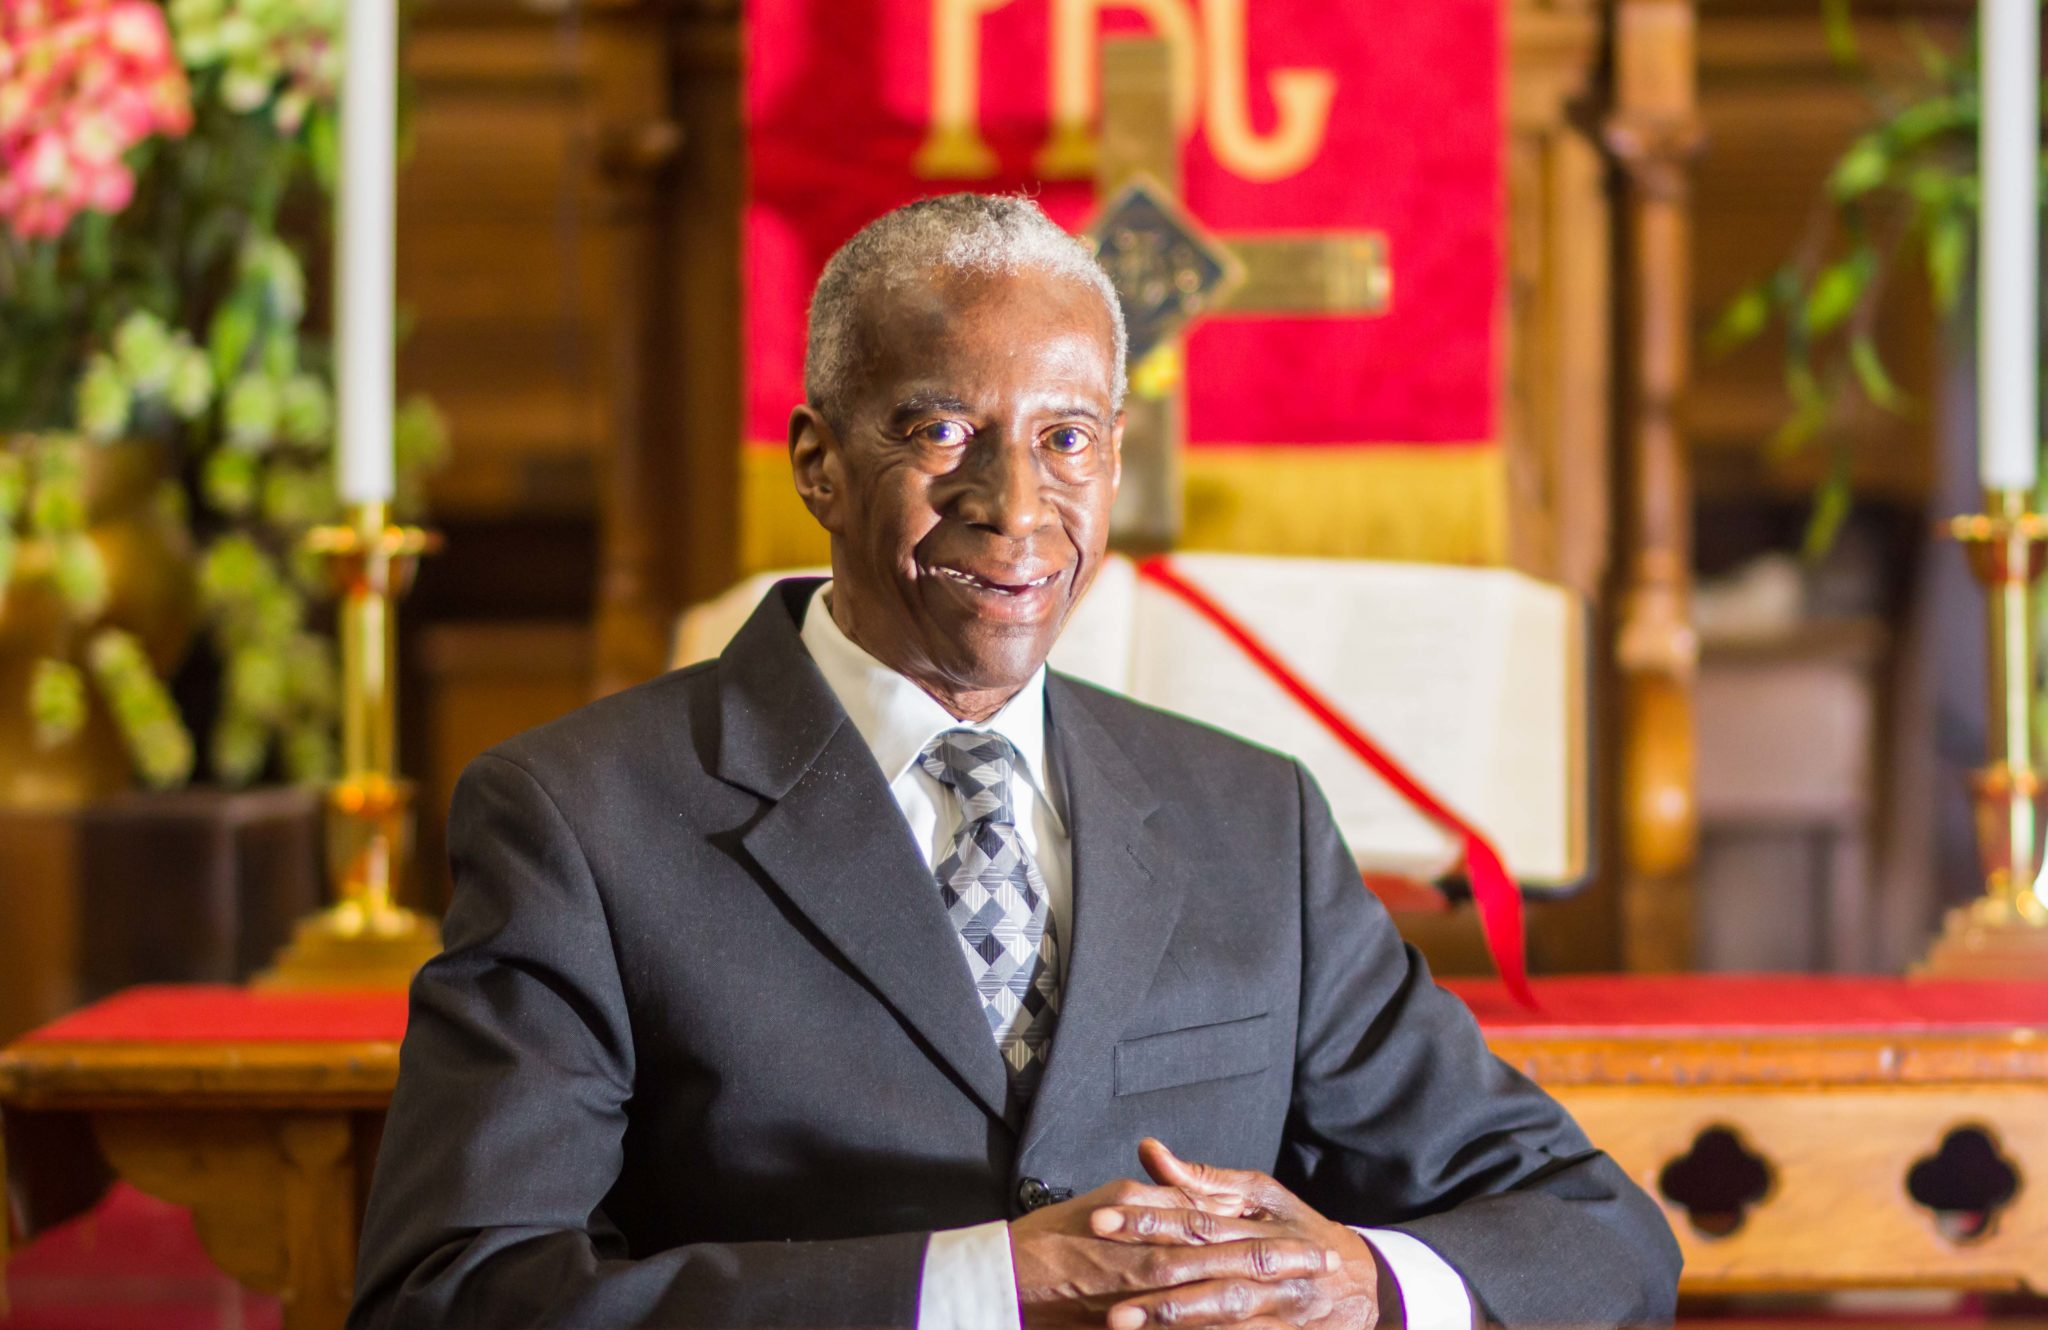 Rev. Dr. Fedrick Bacon